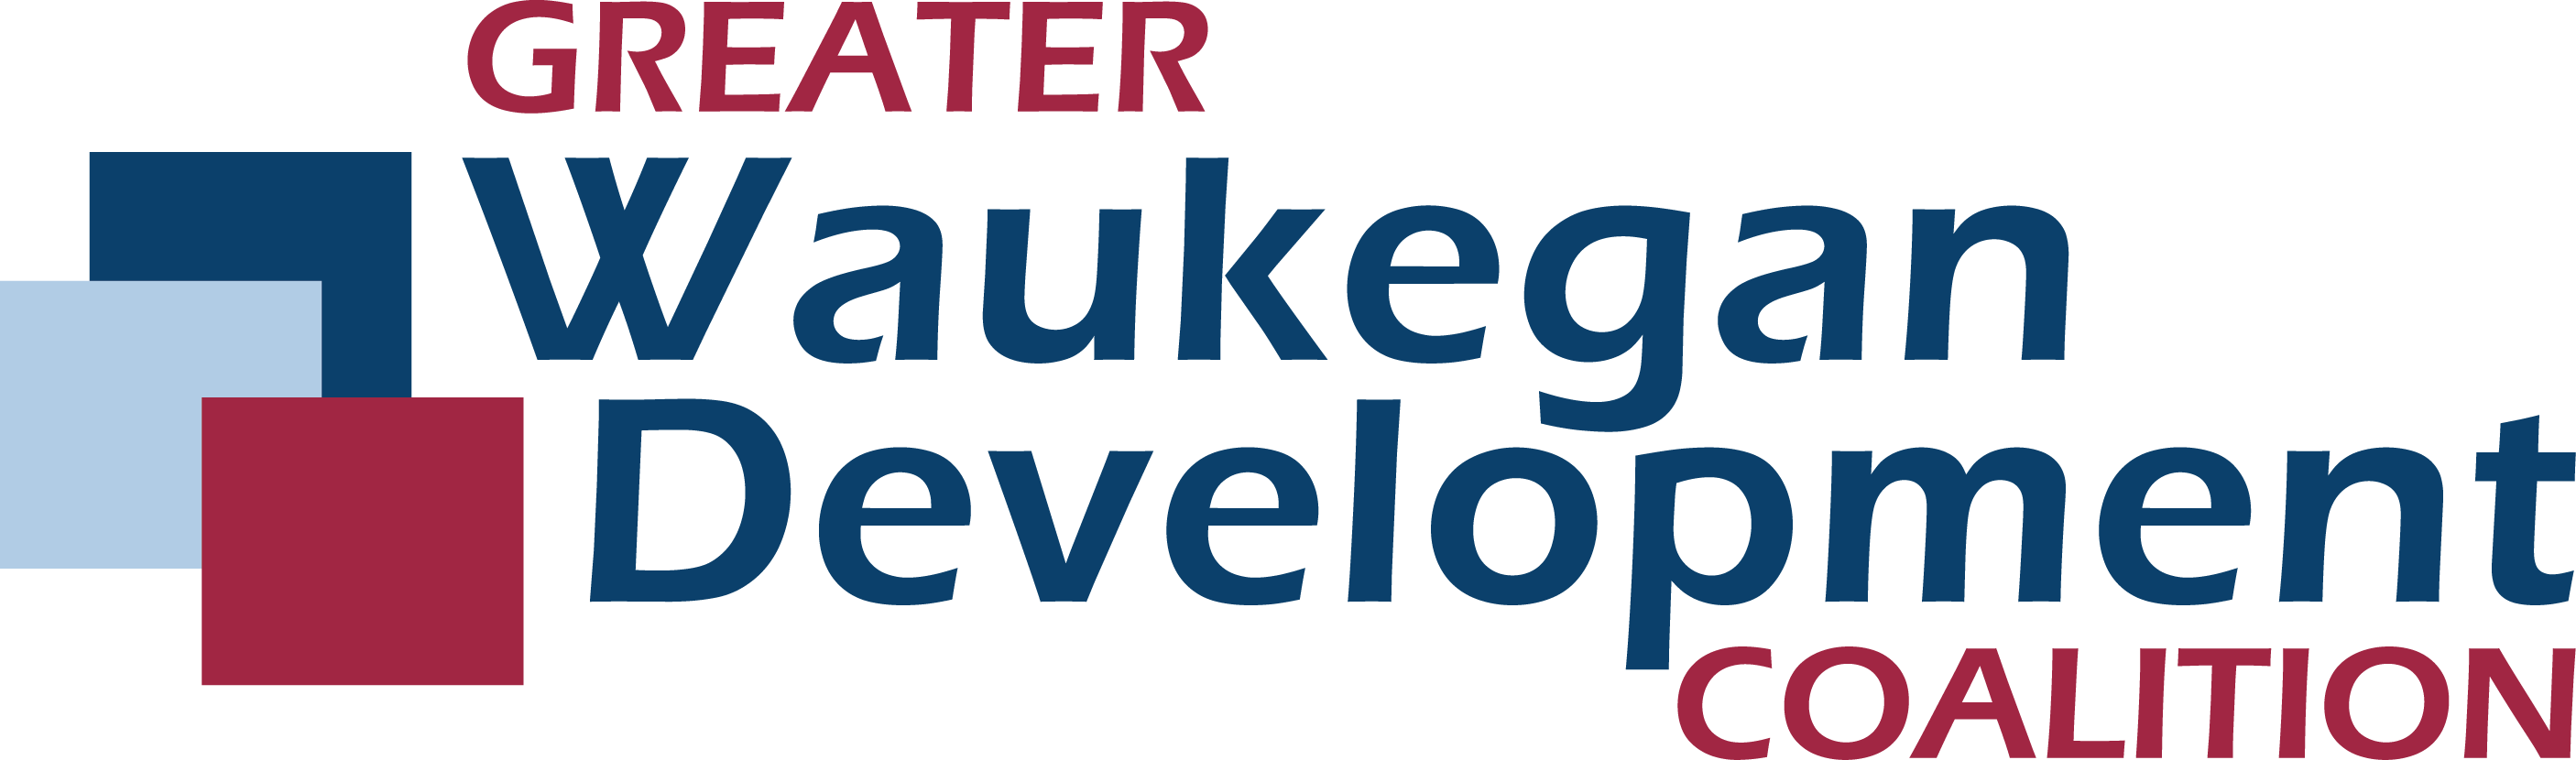 Greater Waukegan Development Coalition